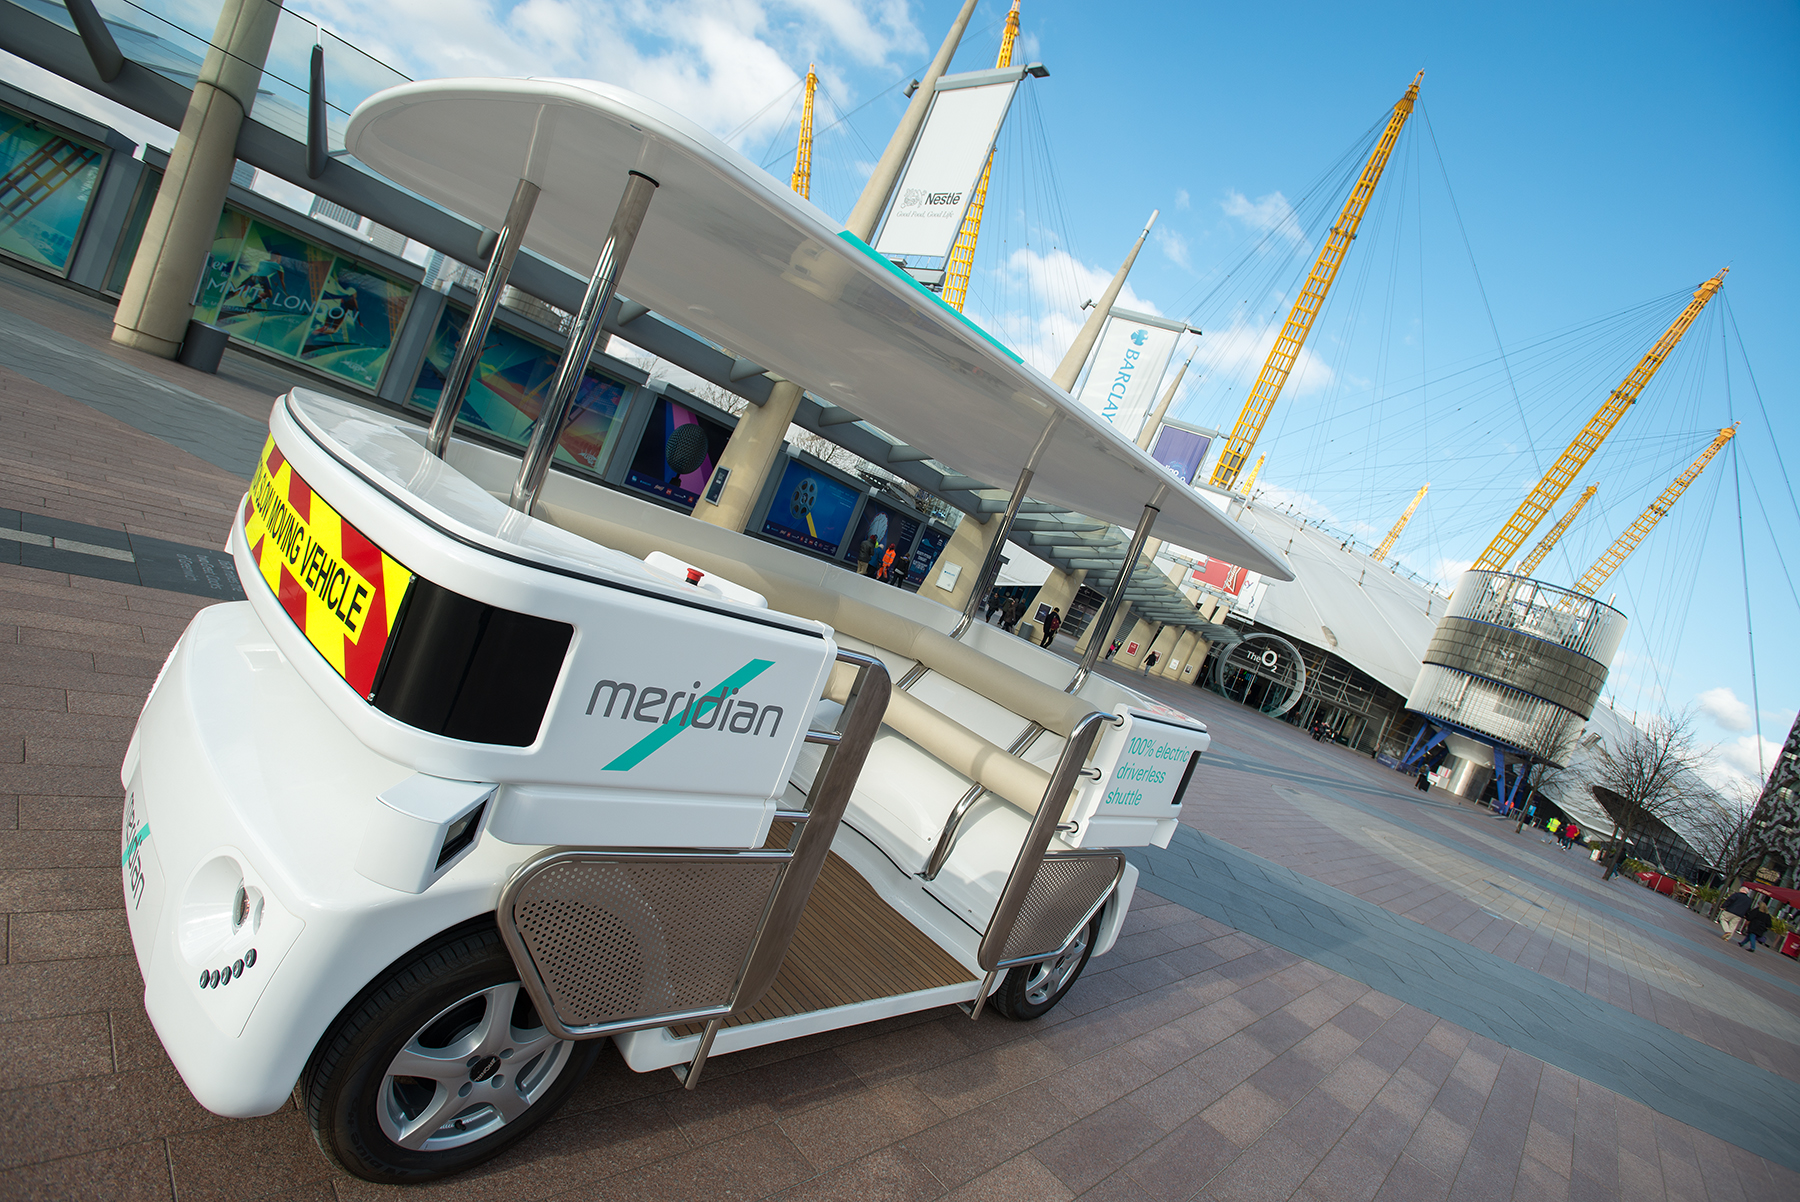 The Greenwich peninsula autonomous shuttle